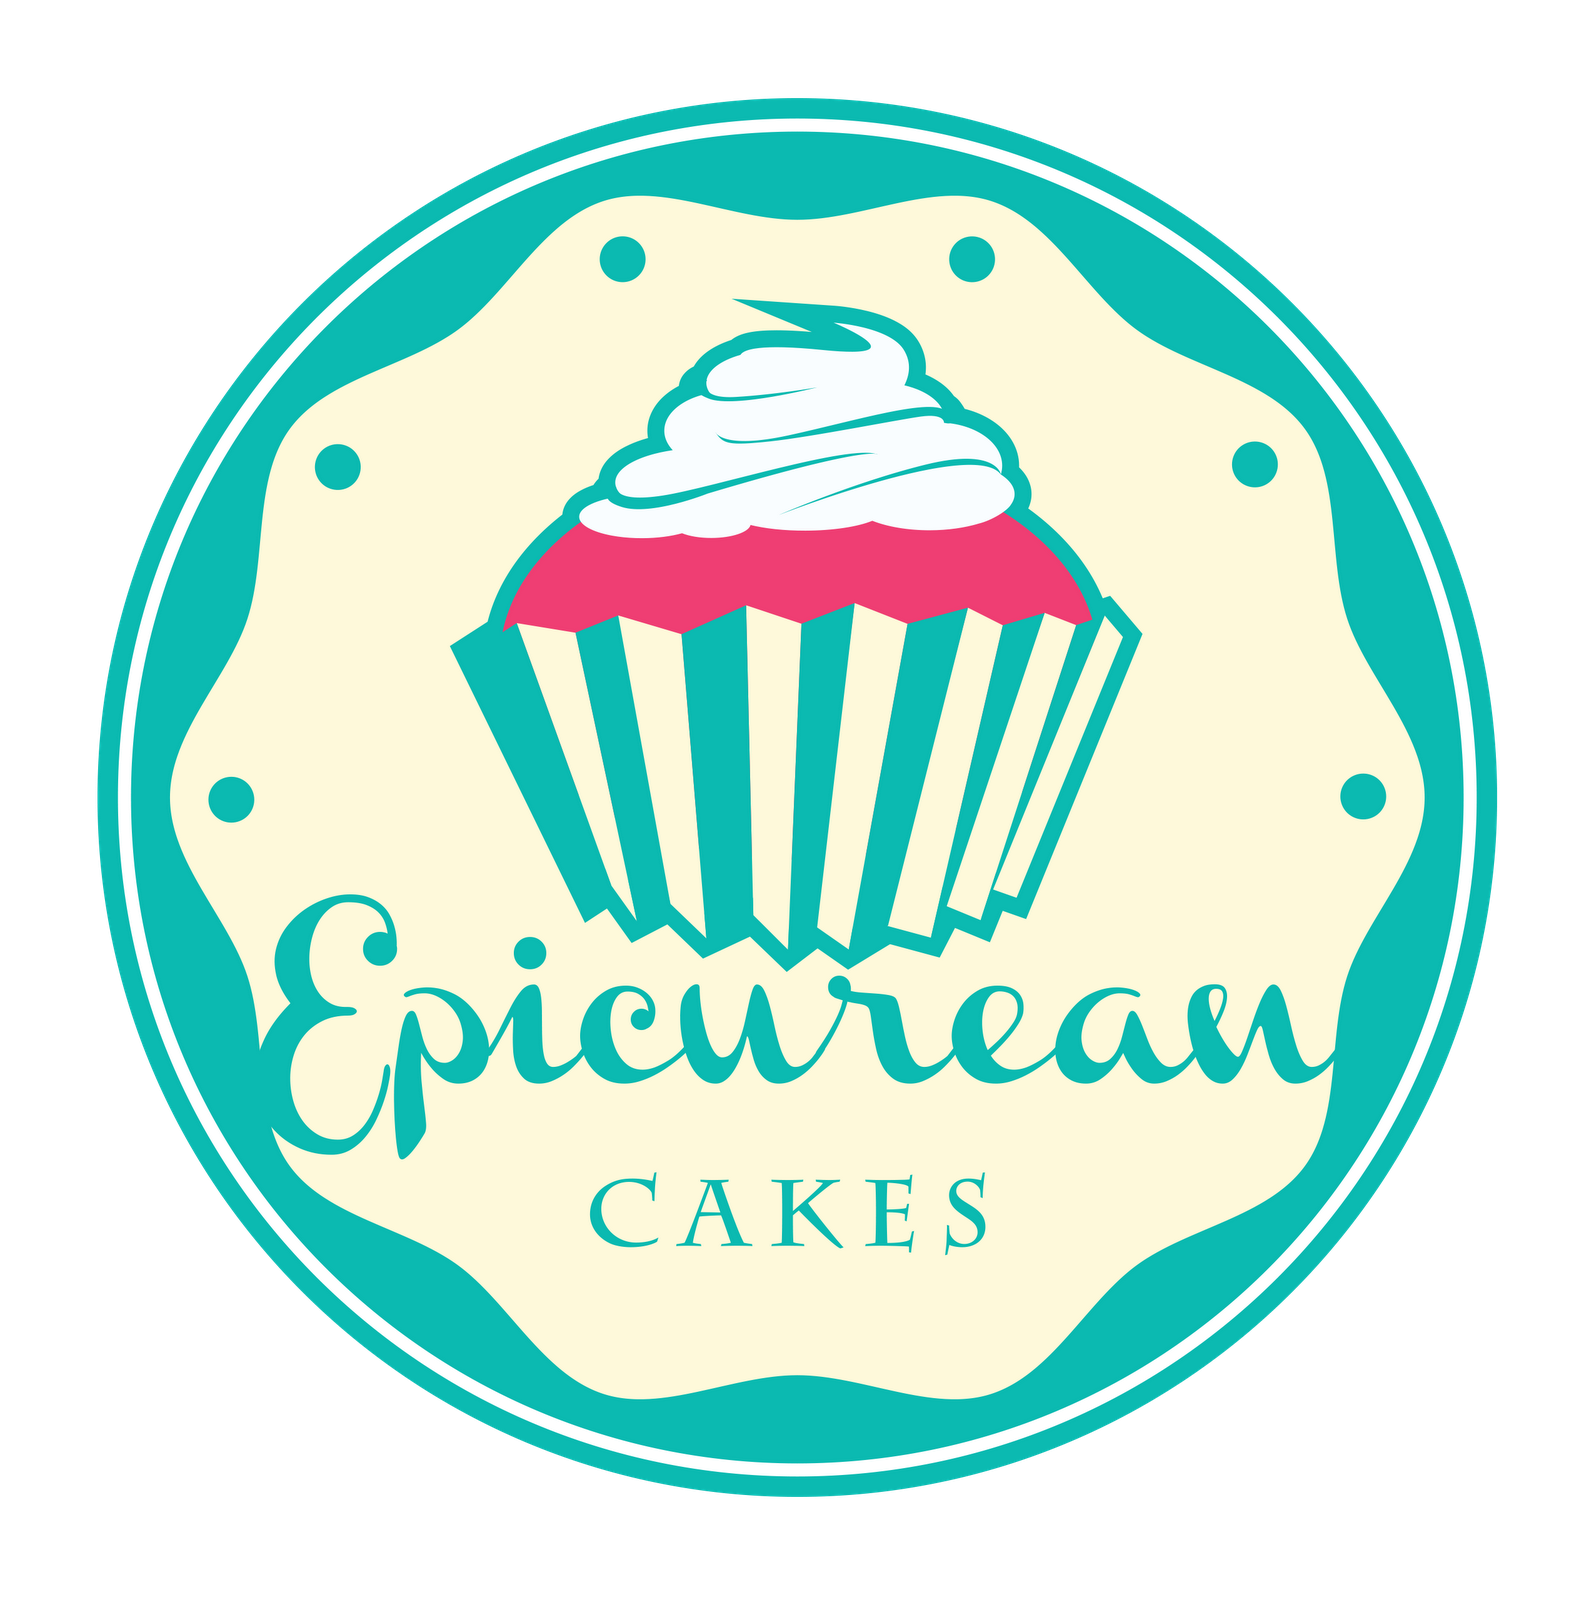 Sweets clipart food taste. Epicurean cakes spread the